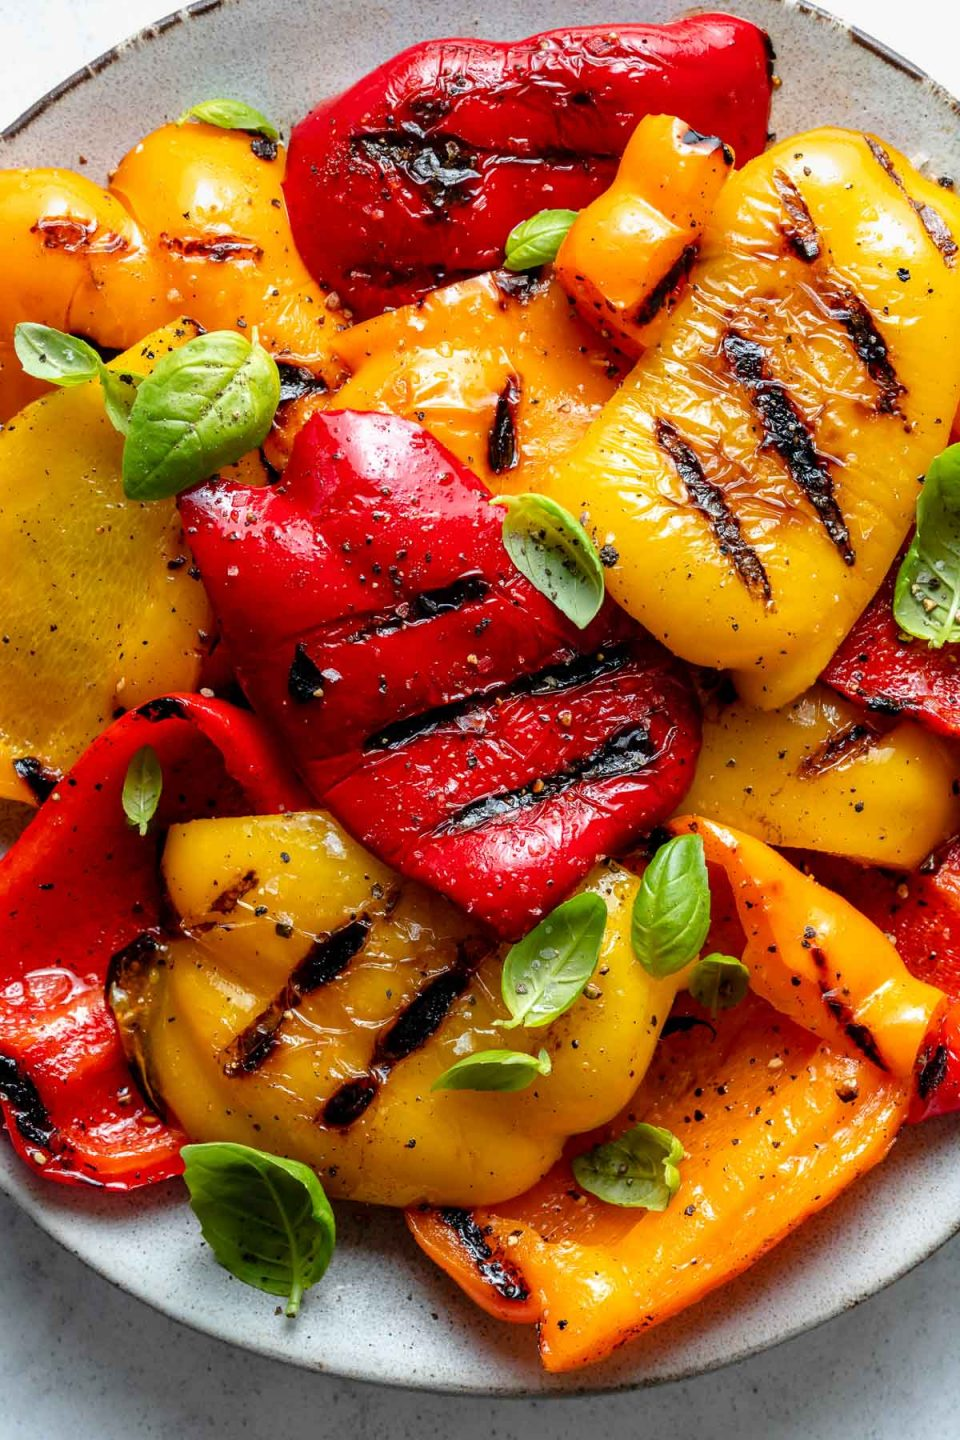 Close up of yellow, orange, & red grilled bell peppers with char marks arranged on a ceramic plate. The grilled bell peppers are garnished with kosher salt, ground black pepper, & fresh herbs. The platter sits on top of a white & gray marble surface.